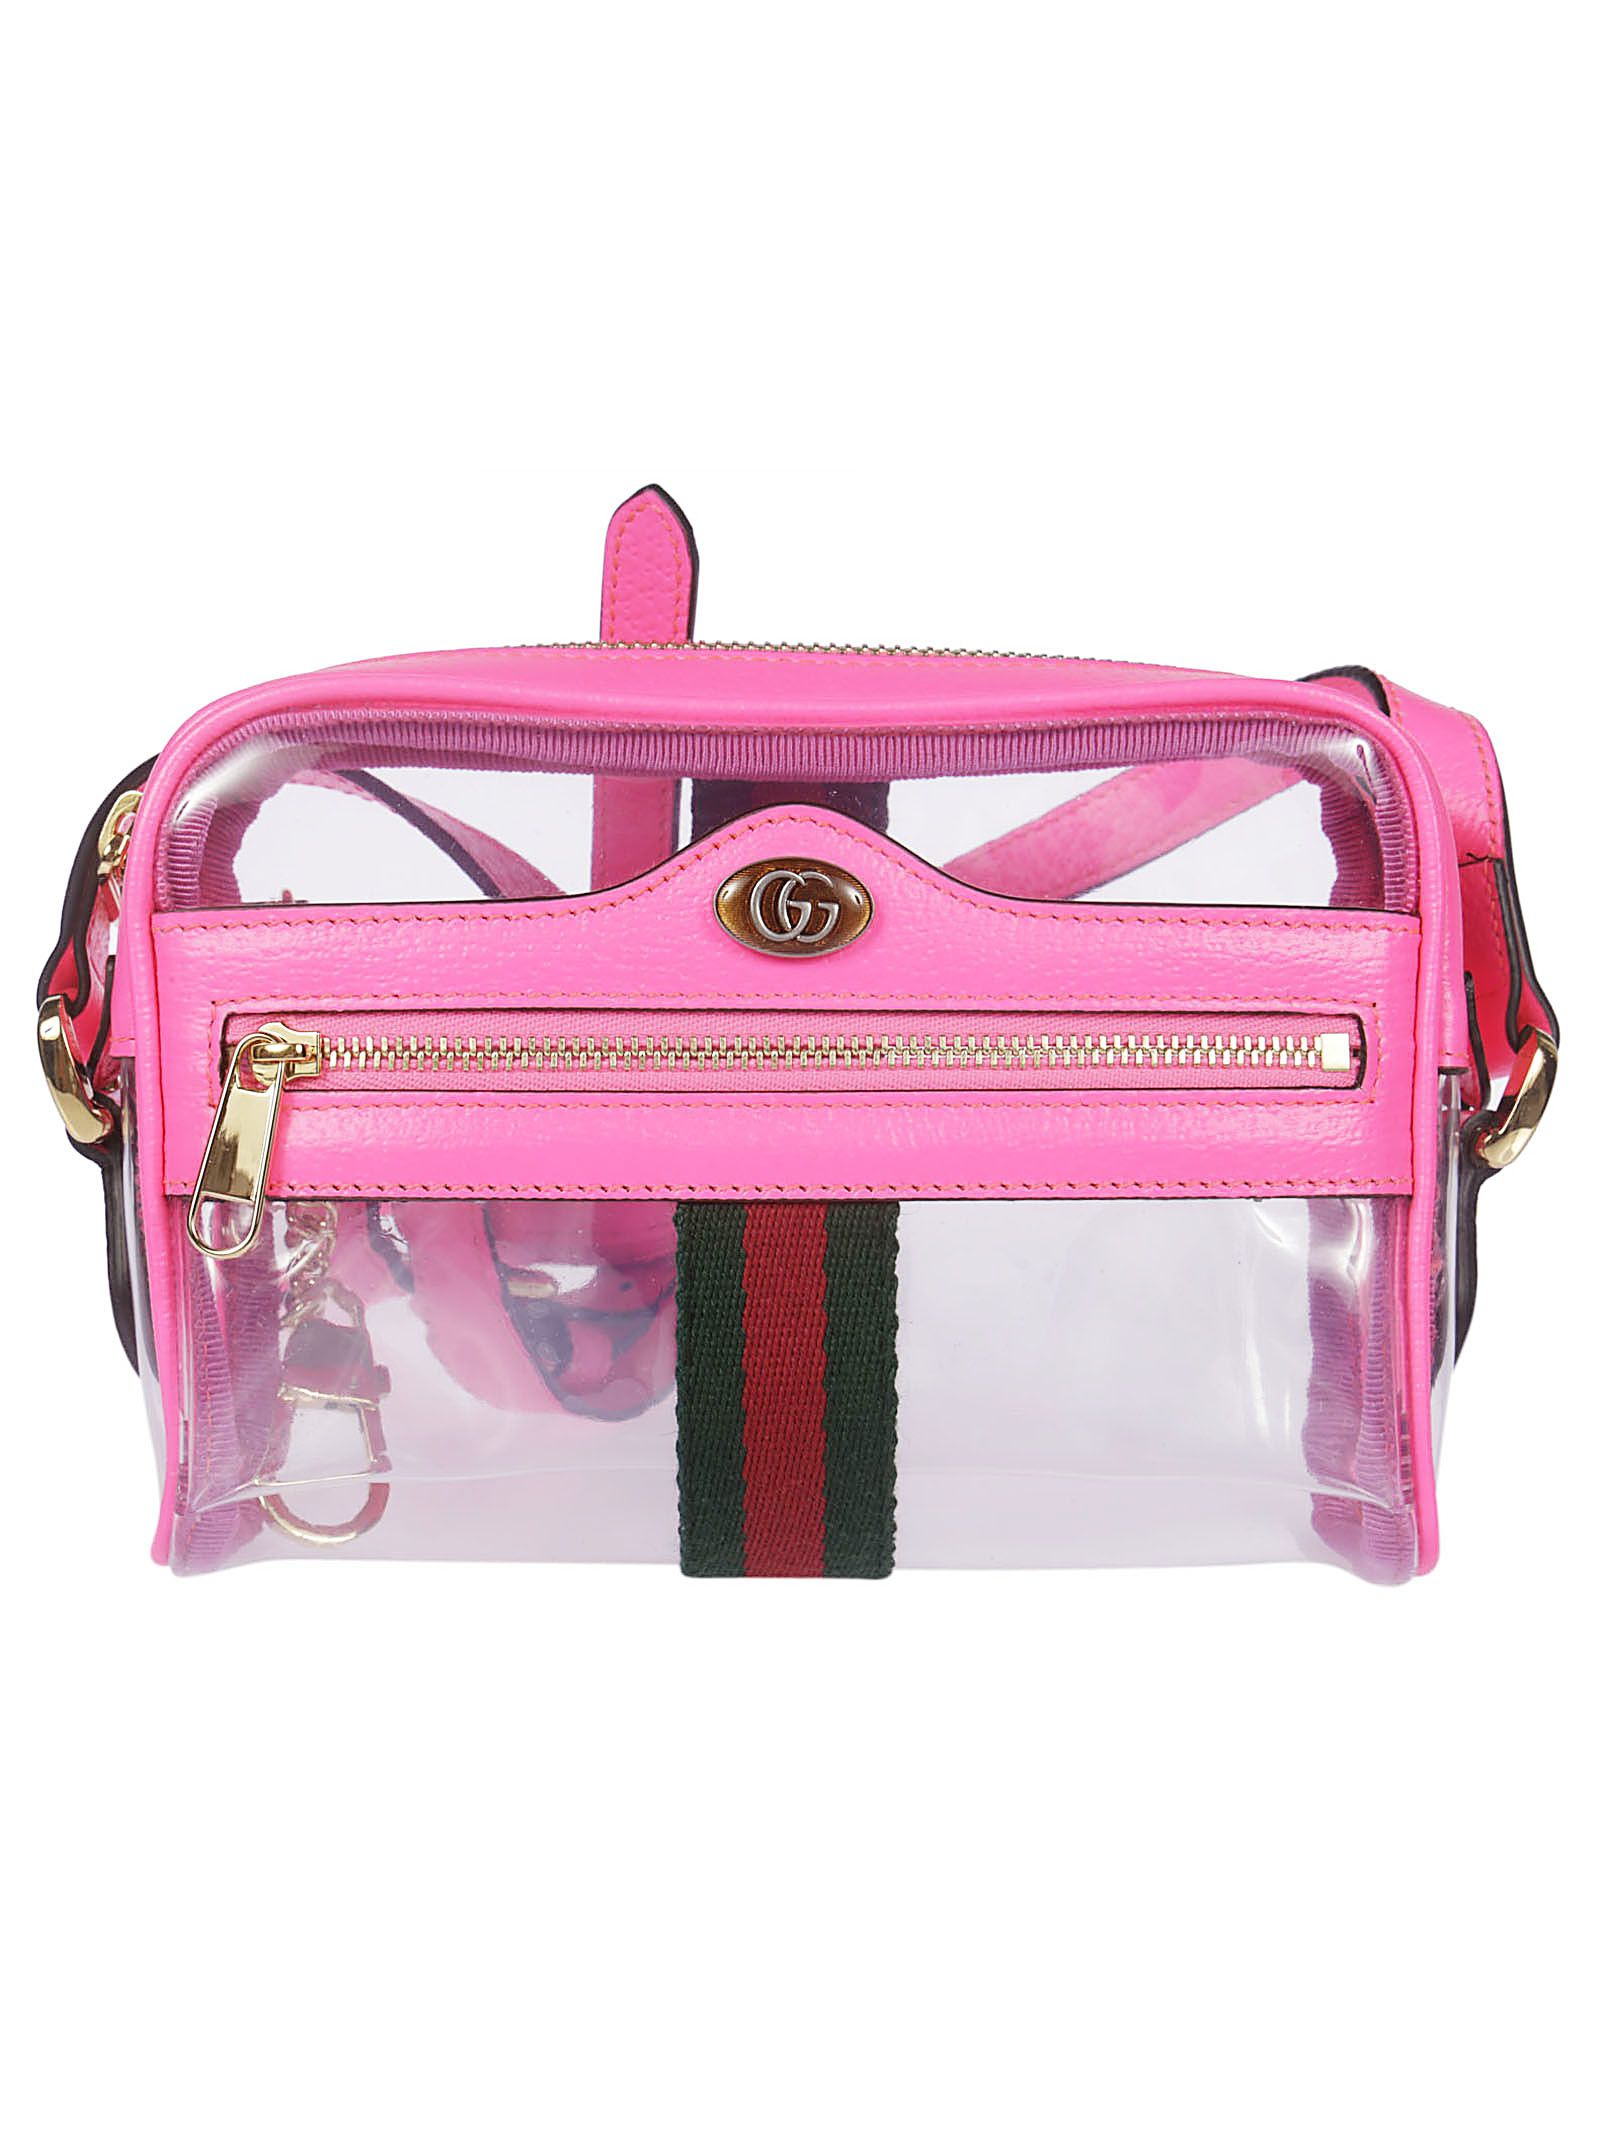 341bb80a1144 Gucci Gucci Ophidia Mini Transparent Shoulder Bag - Fuxia Fluo ...